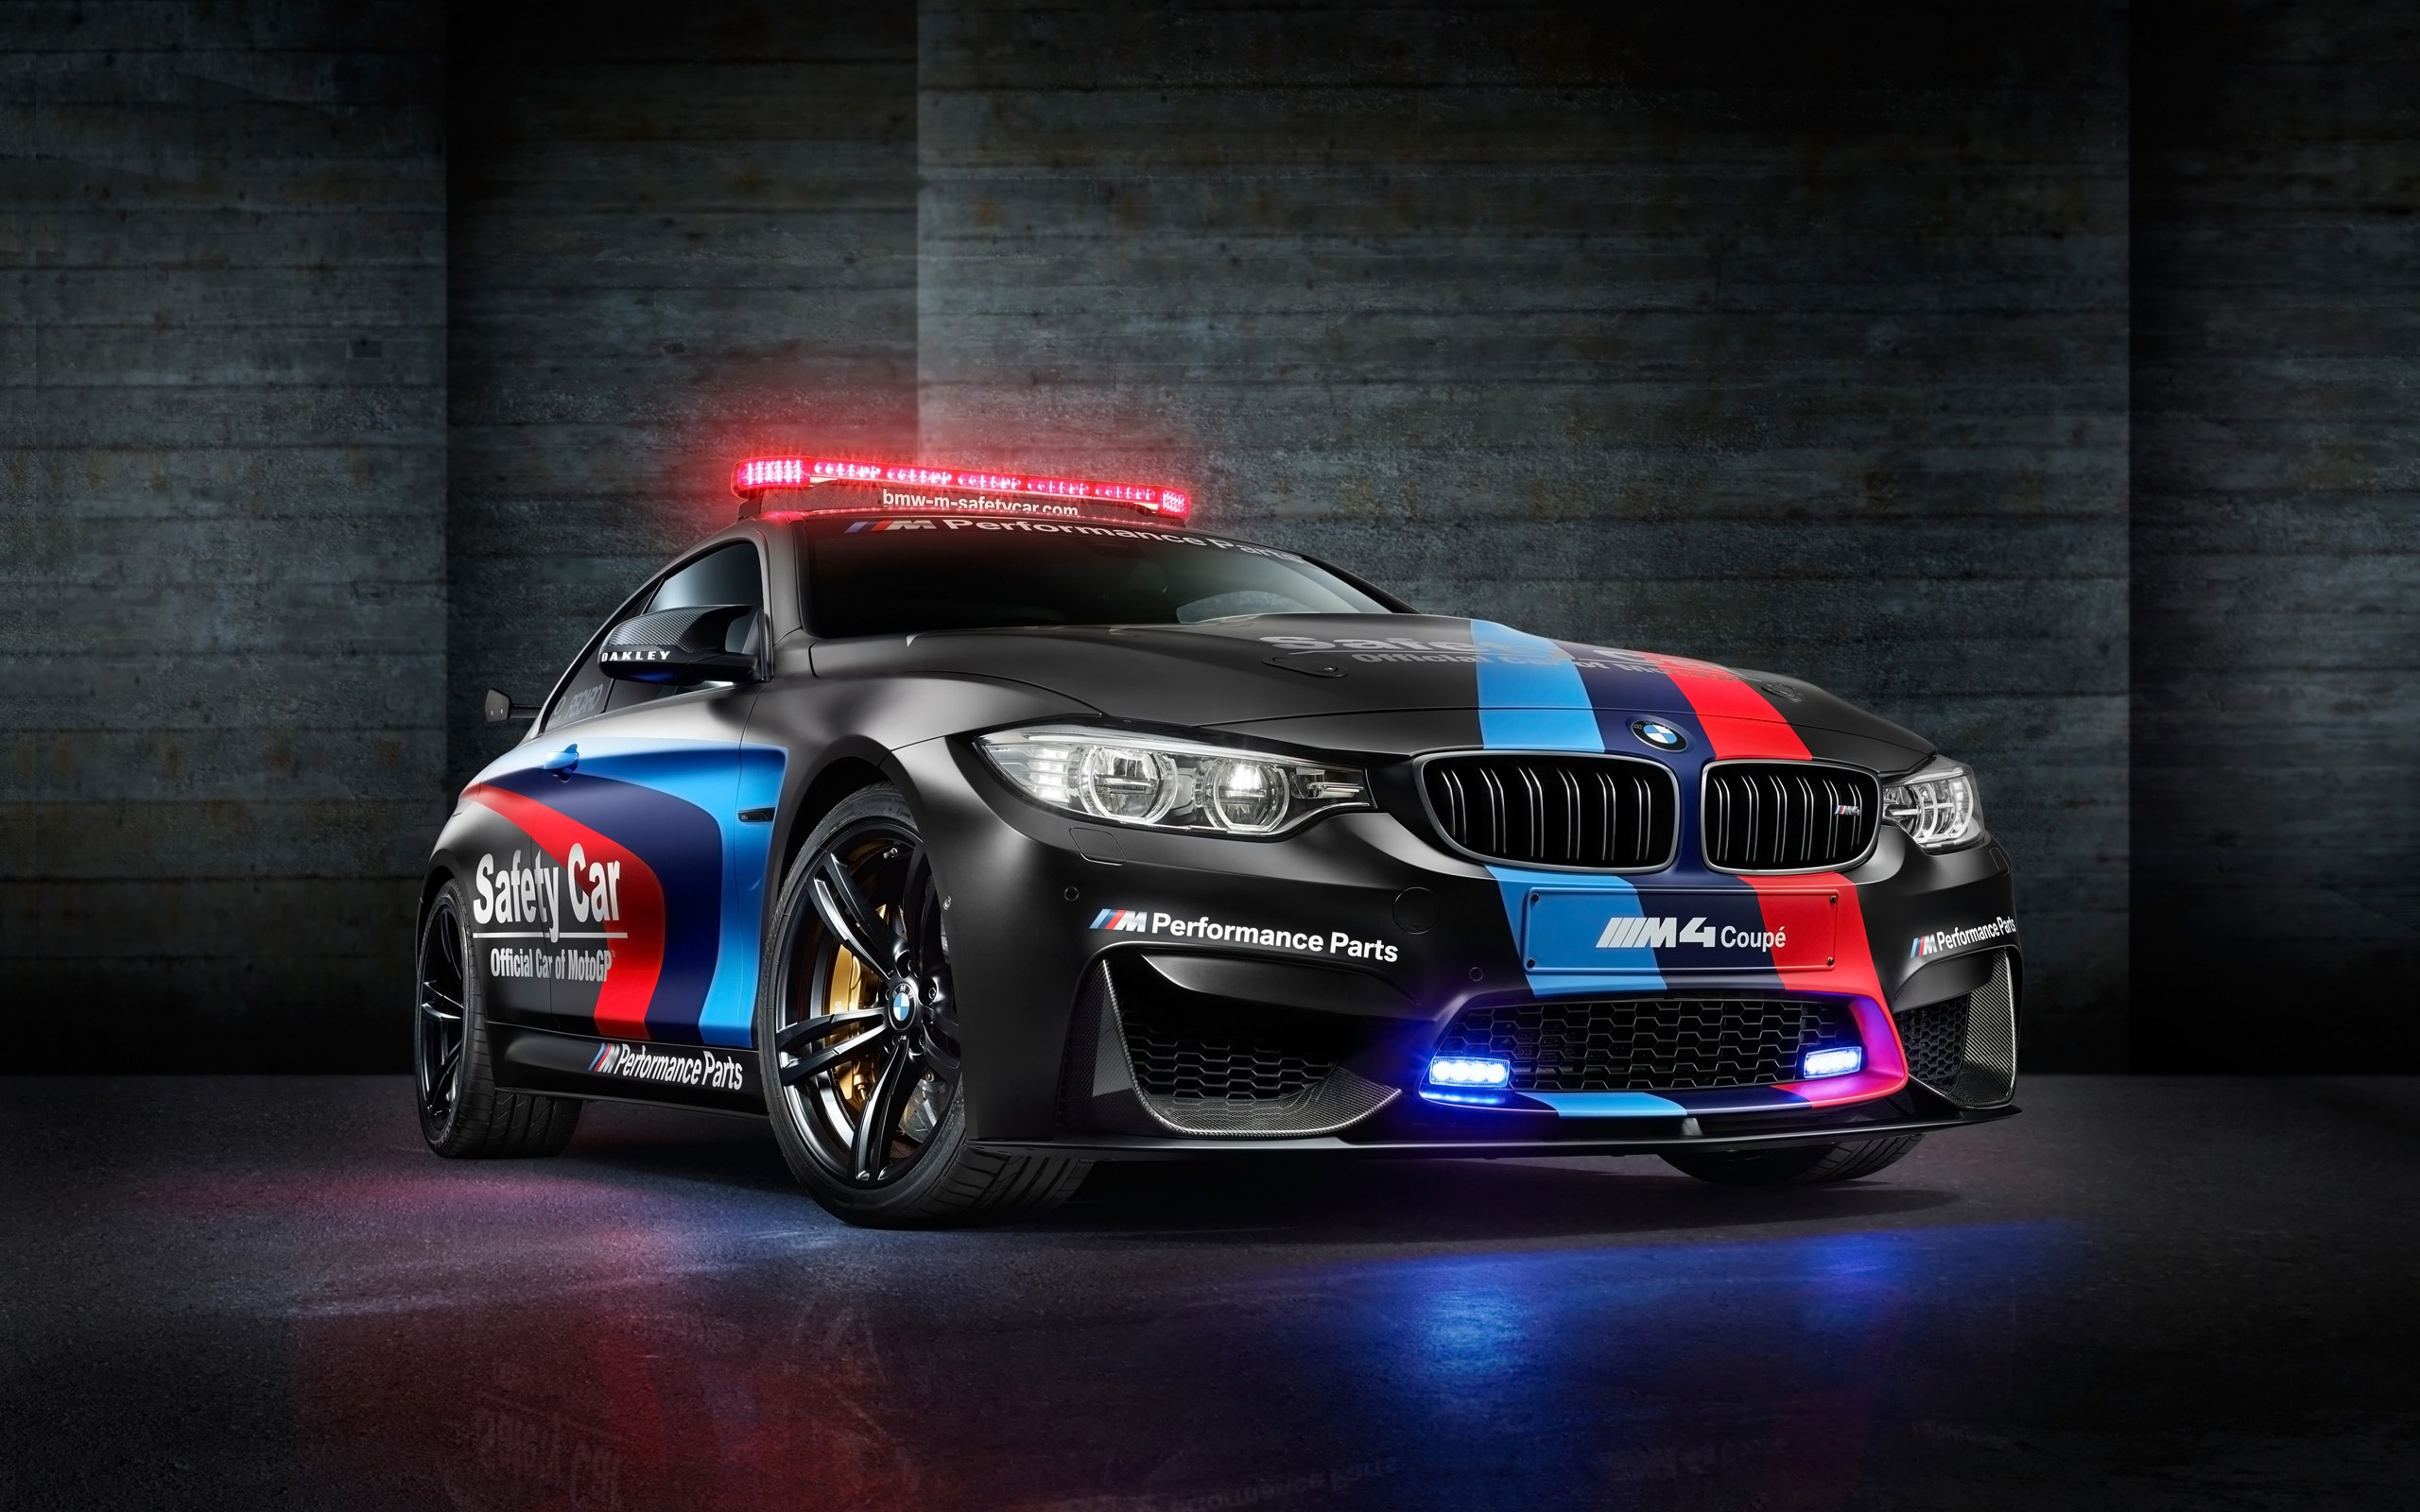 2015 bmw m4 motogp safety bike wallpapers in jpg format for free